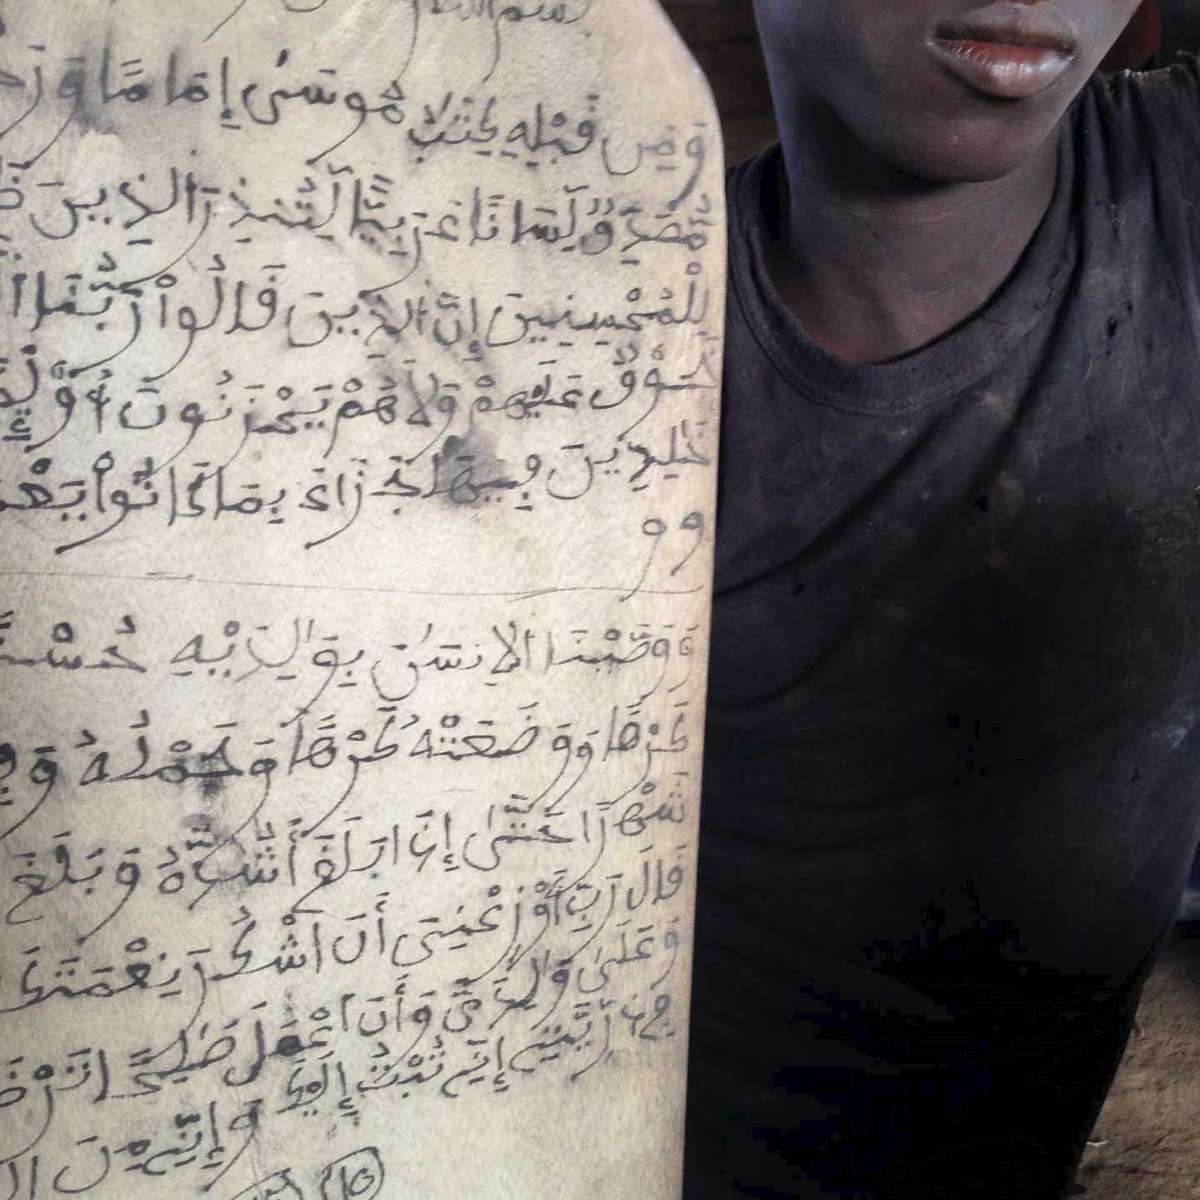 A young boy studying Koran copies verses onto a wooden tablet in a village in southern Senegal near the border with Guinea-Bissau. March 2014.